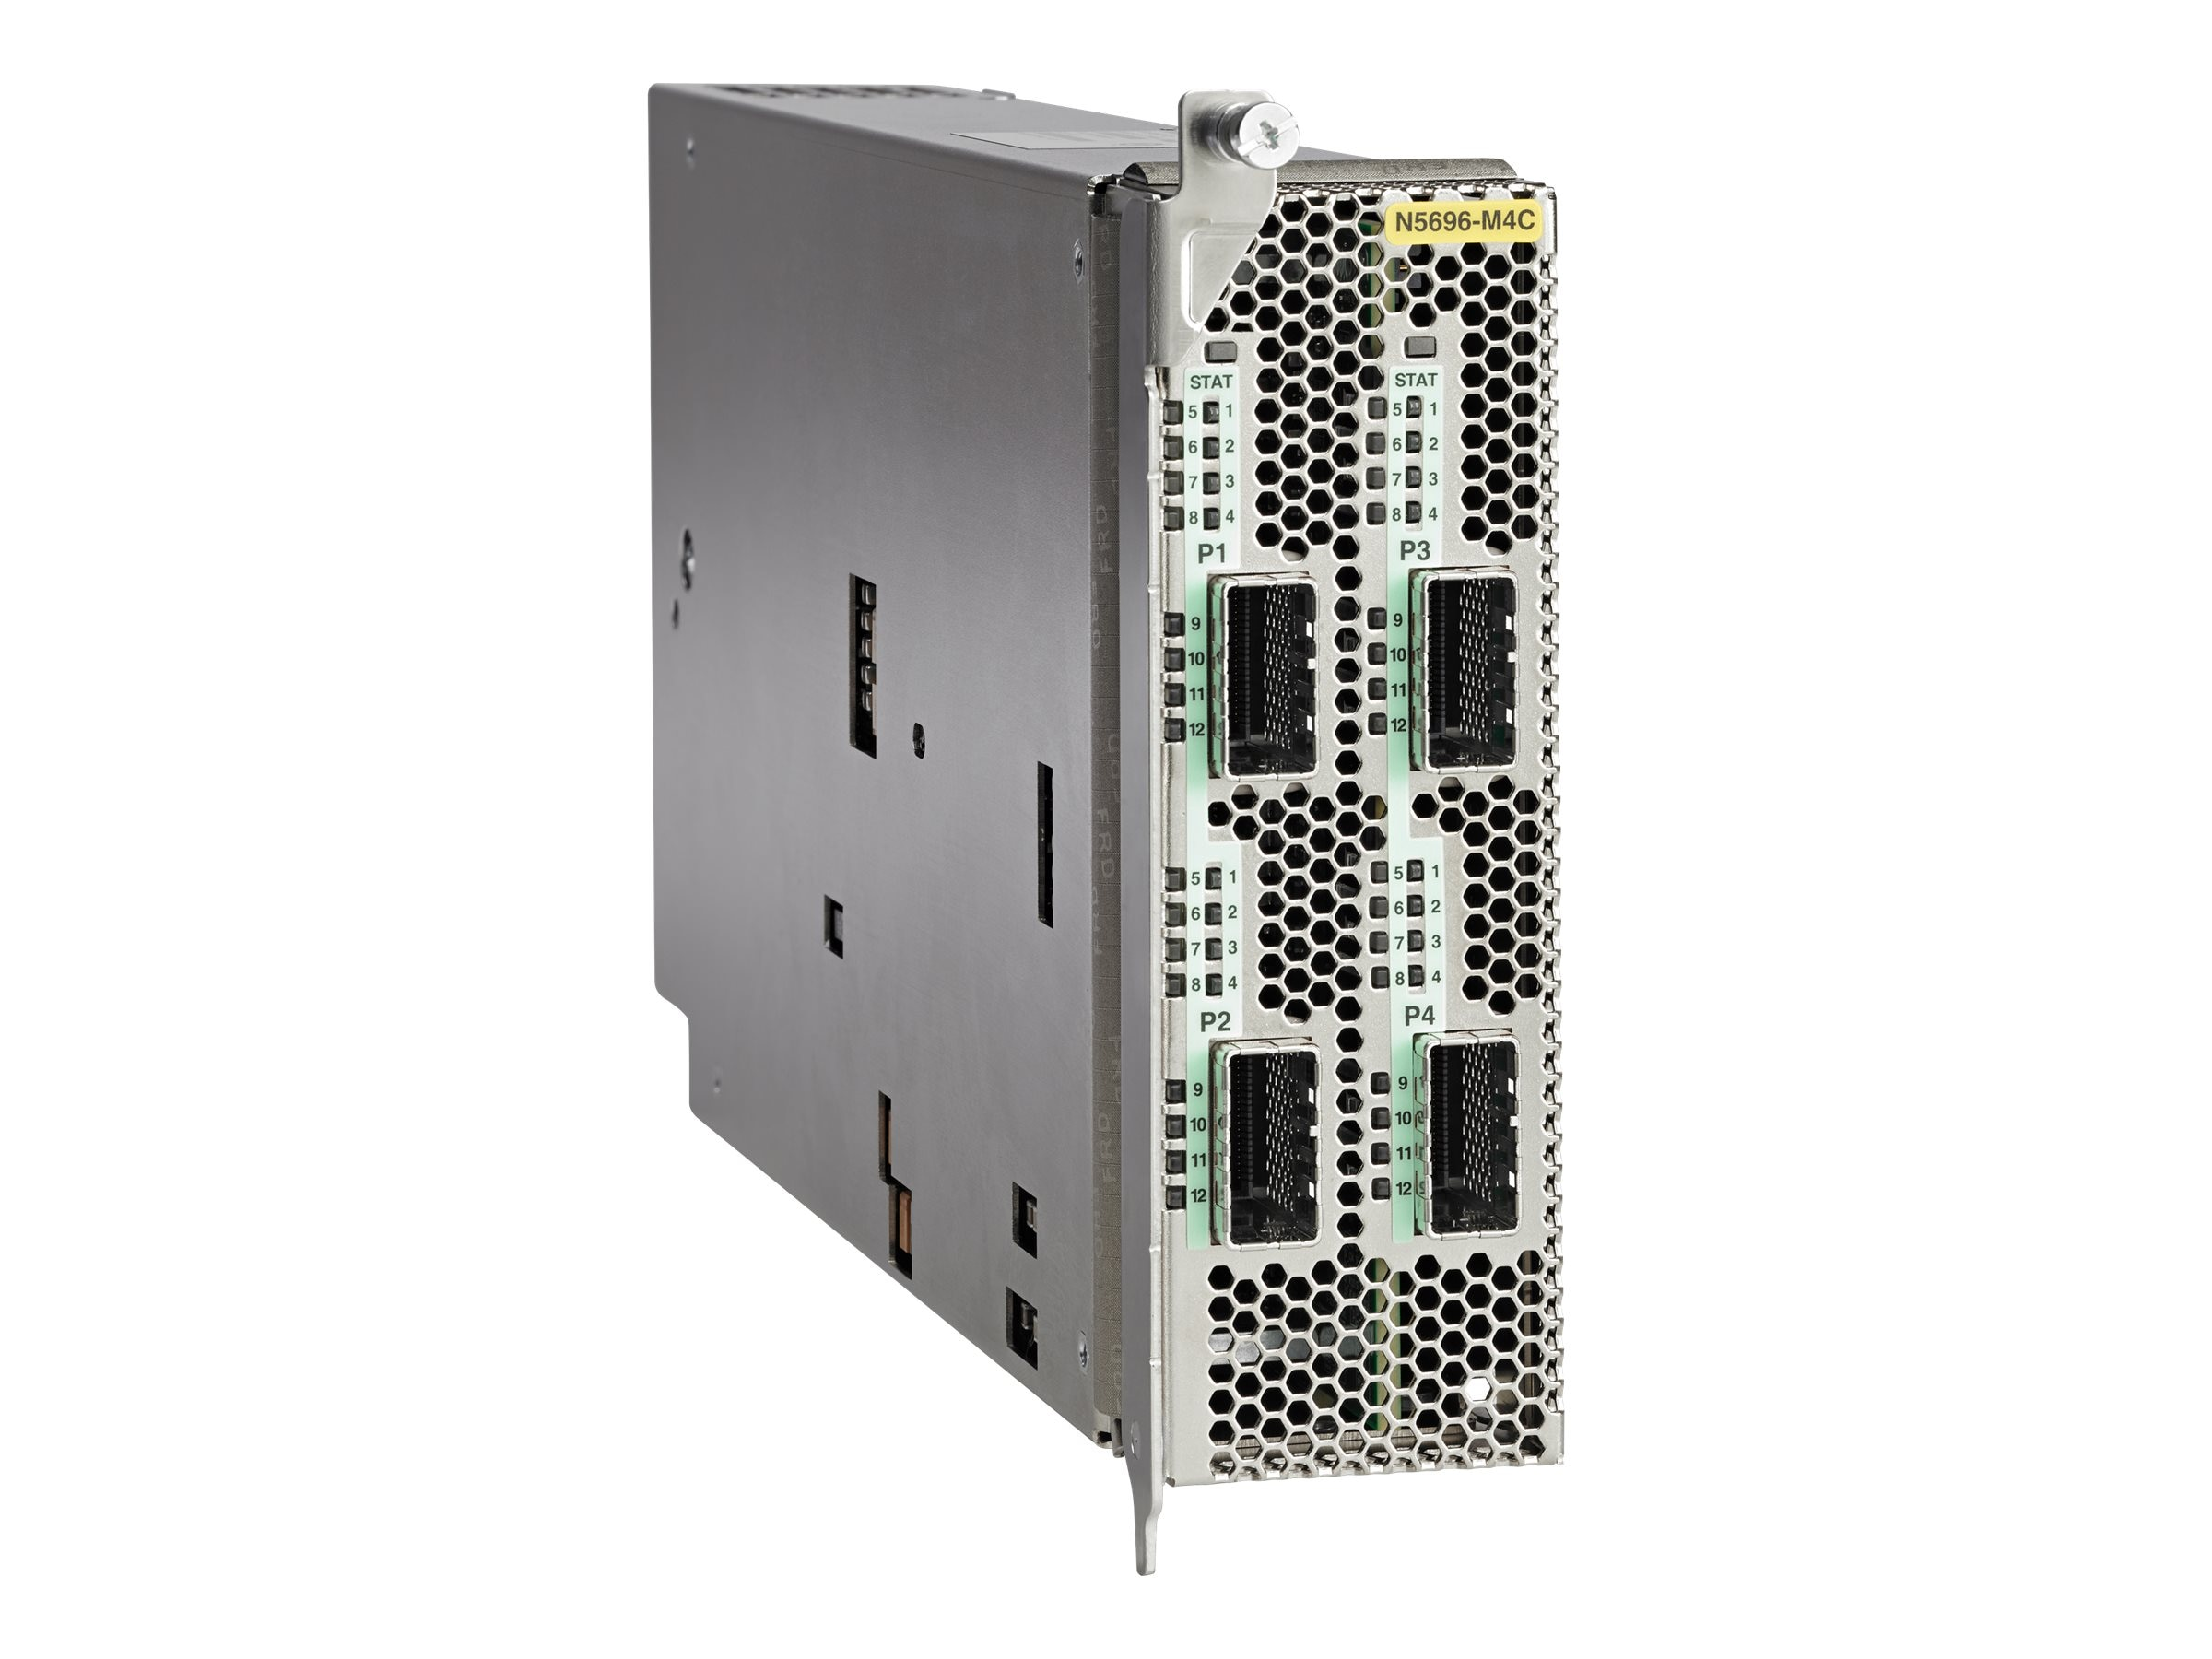 Cisco N5696-M4C= Image 1